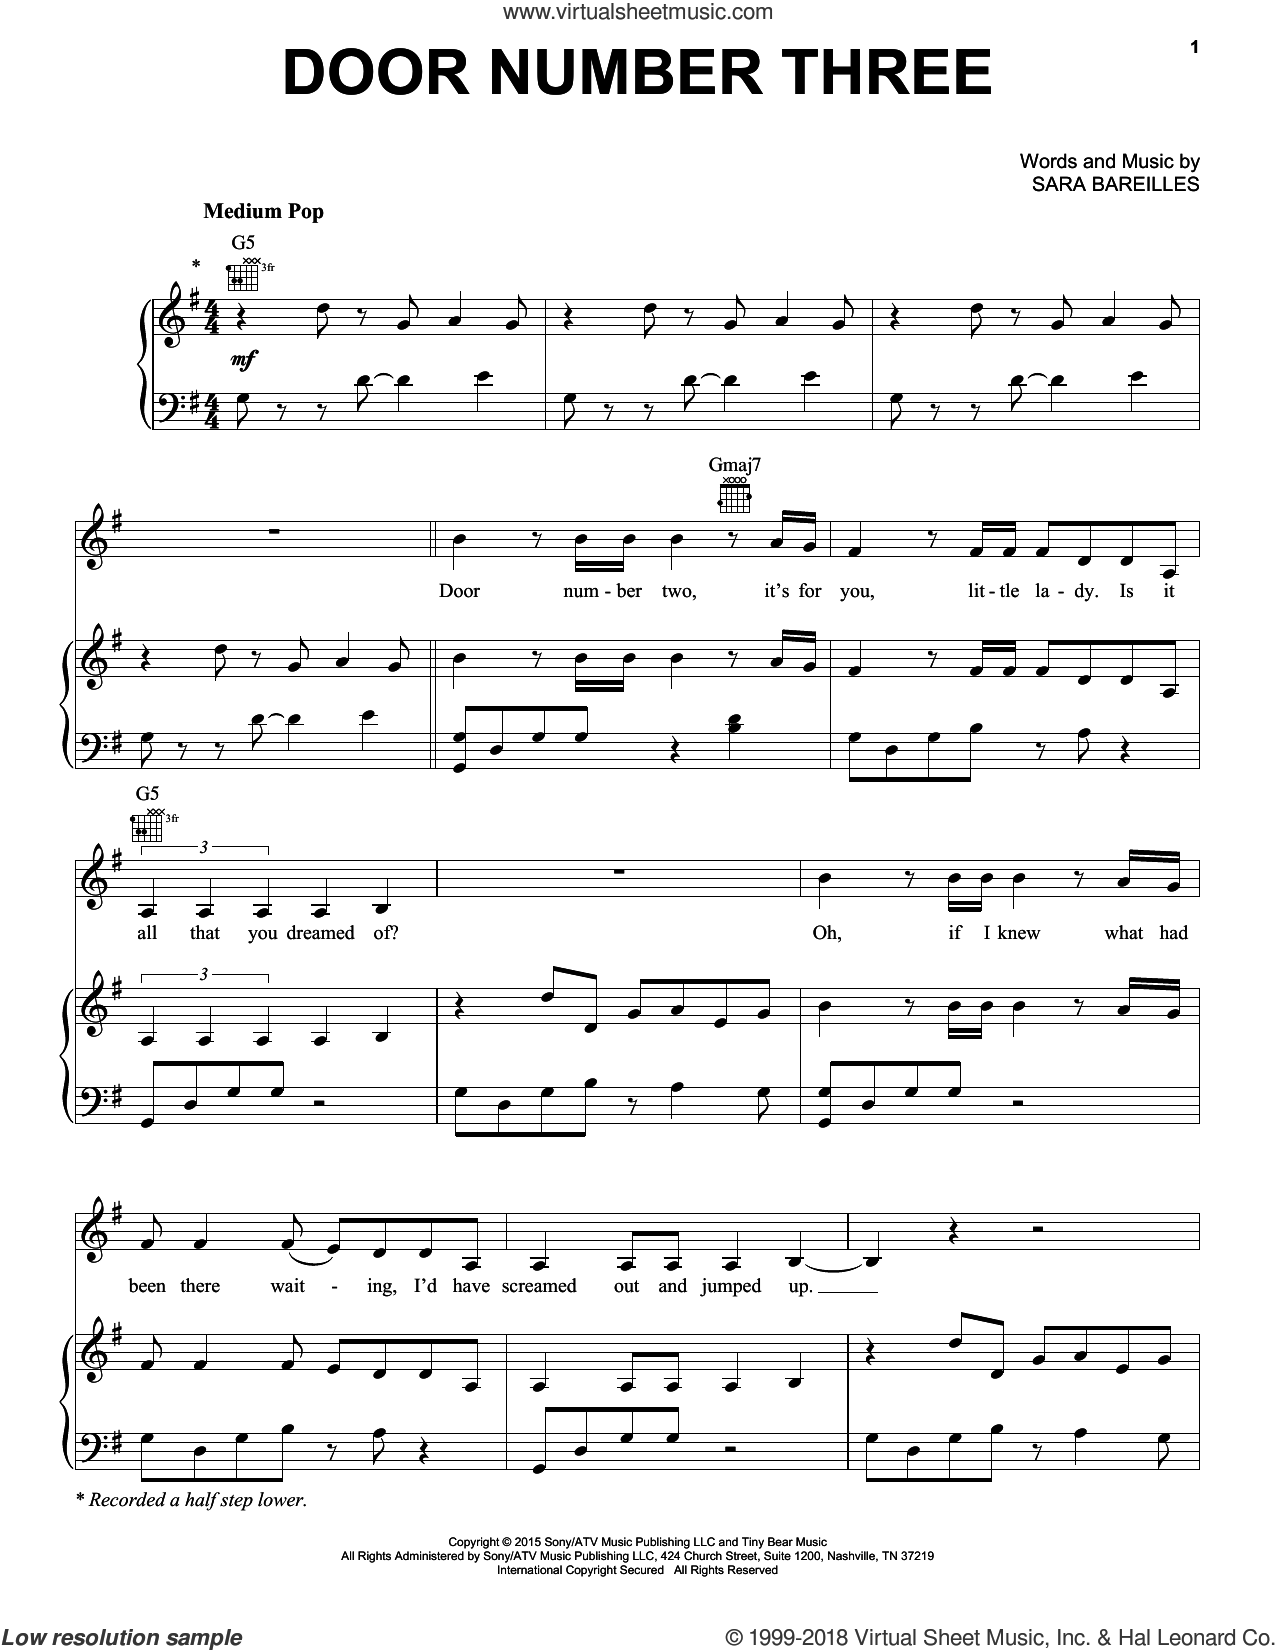 Door Number Three sheet music for voice, piano or guitar by Sara Bareilles, intermediate skill level